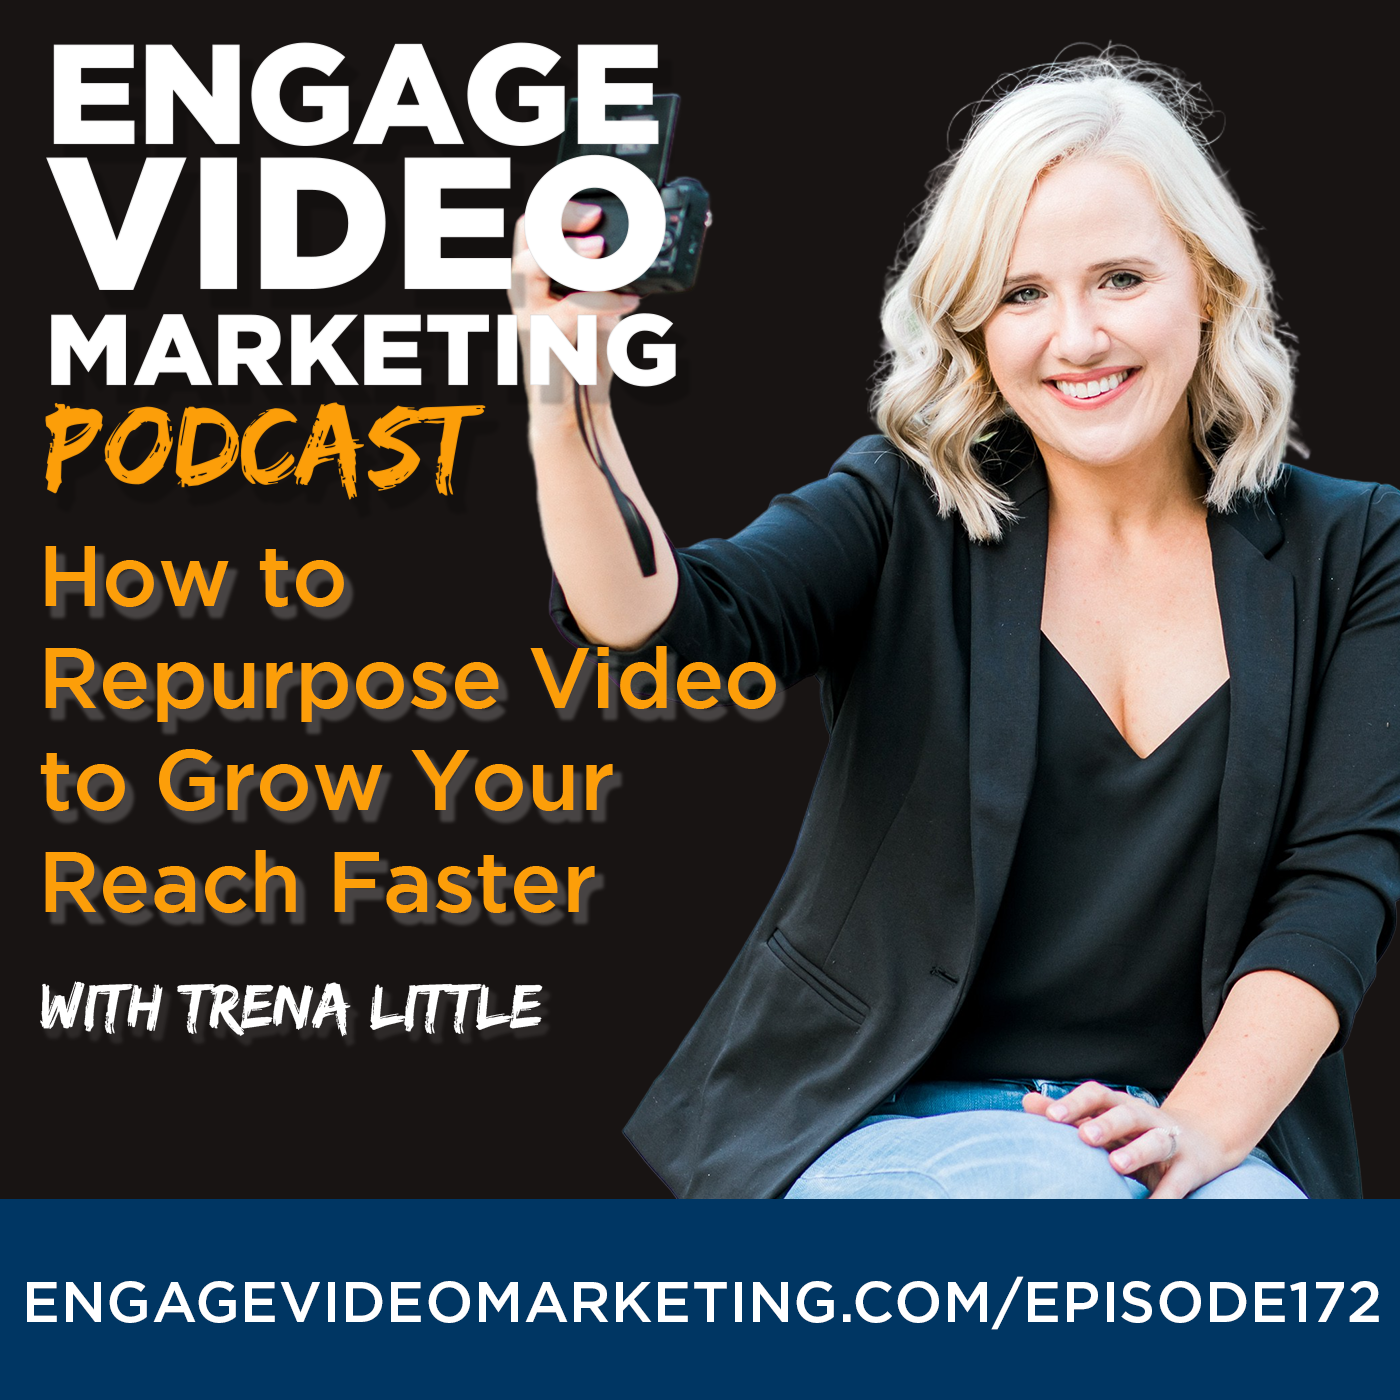 How to Repurpose Video to Grow Your Reach Faster with Trena Little